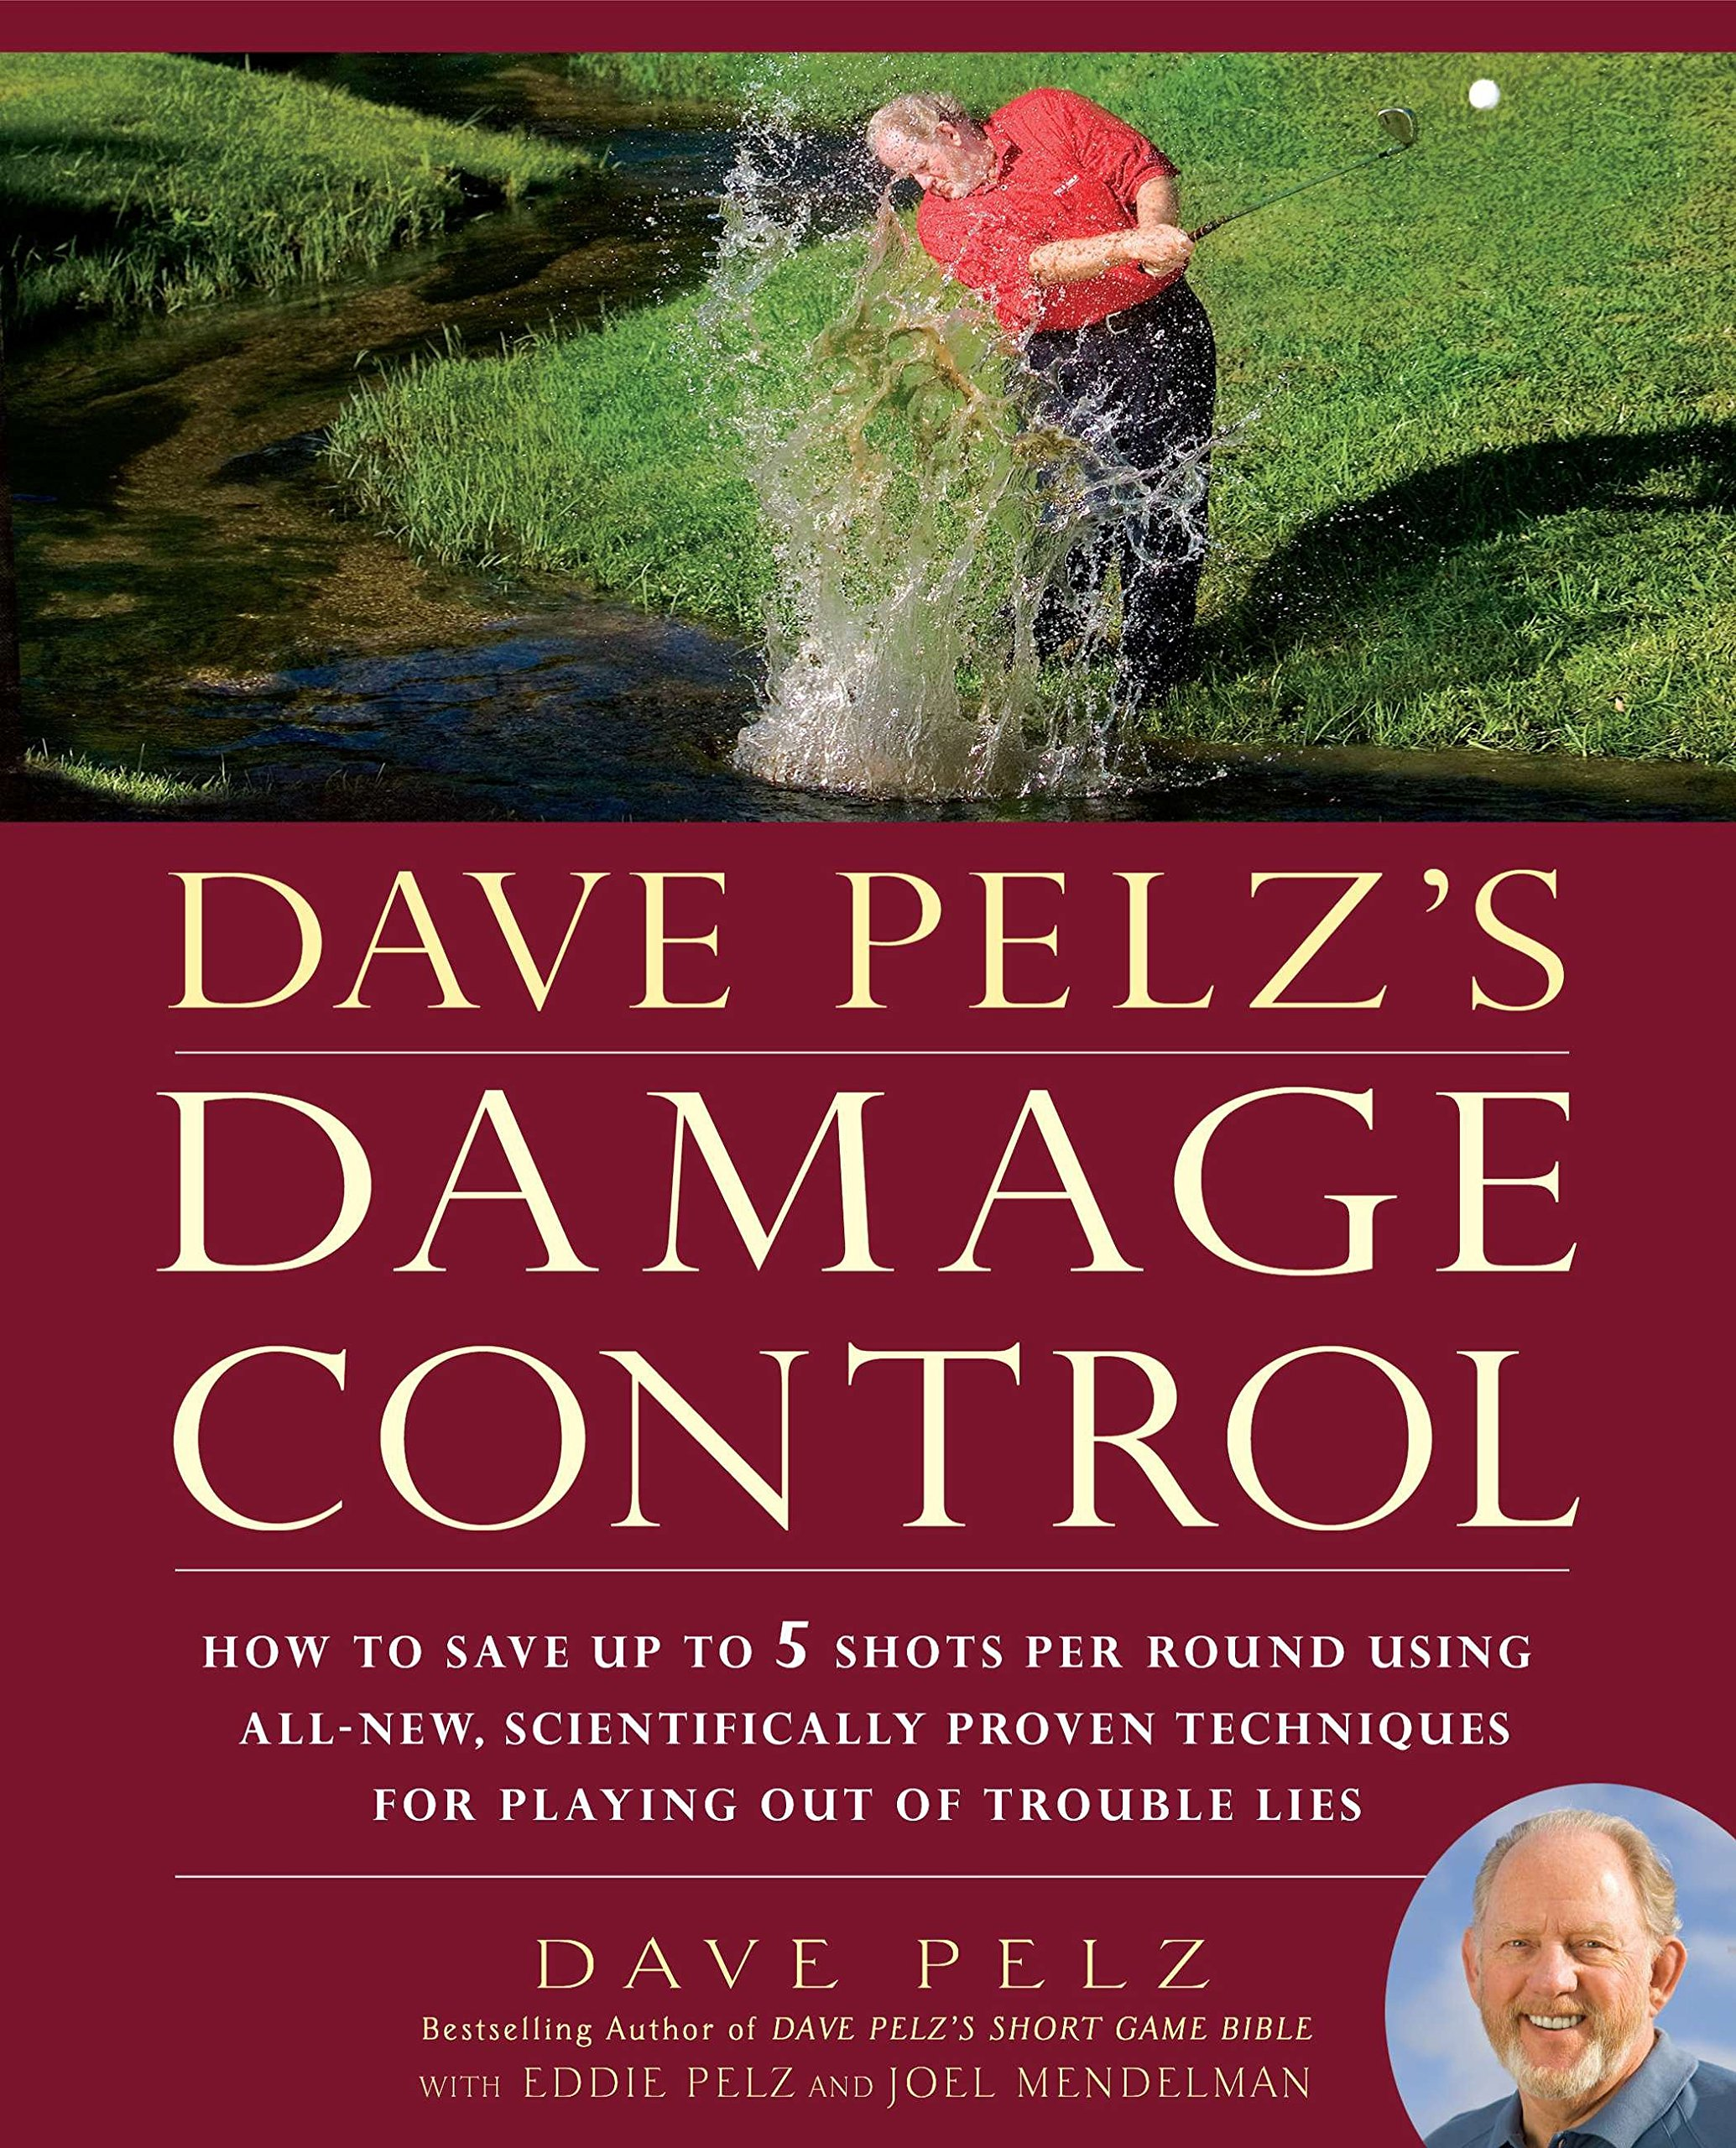 Dave Pelz's Damage Control: How to Save Up to 5 Shots Per Round Using  All-New, Scientifically Proven Techniq ues for Playing Out of Trouble Lies: Dave  Pelz: ...